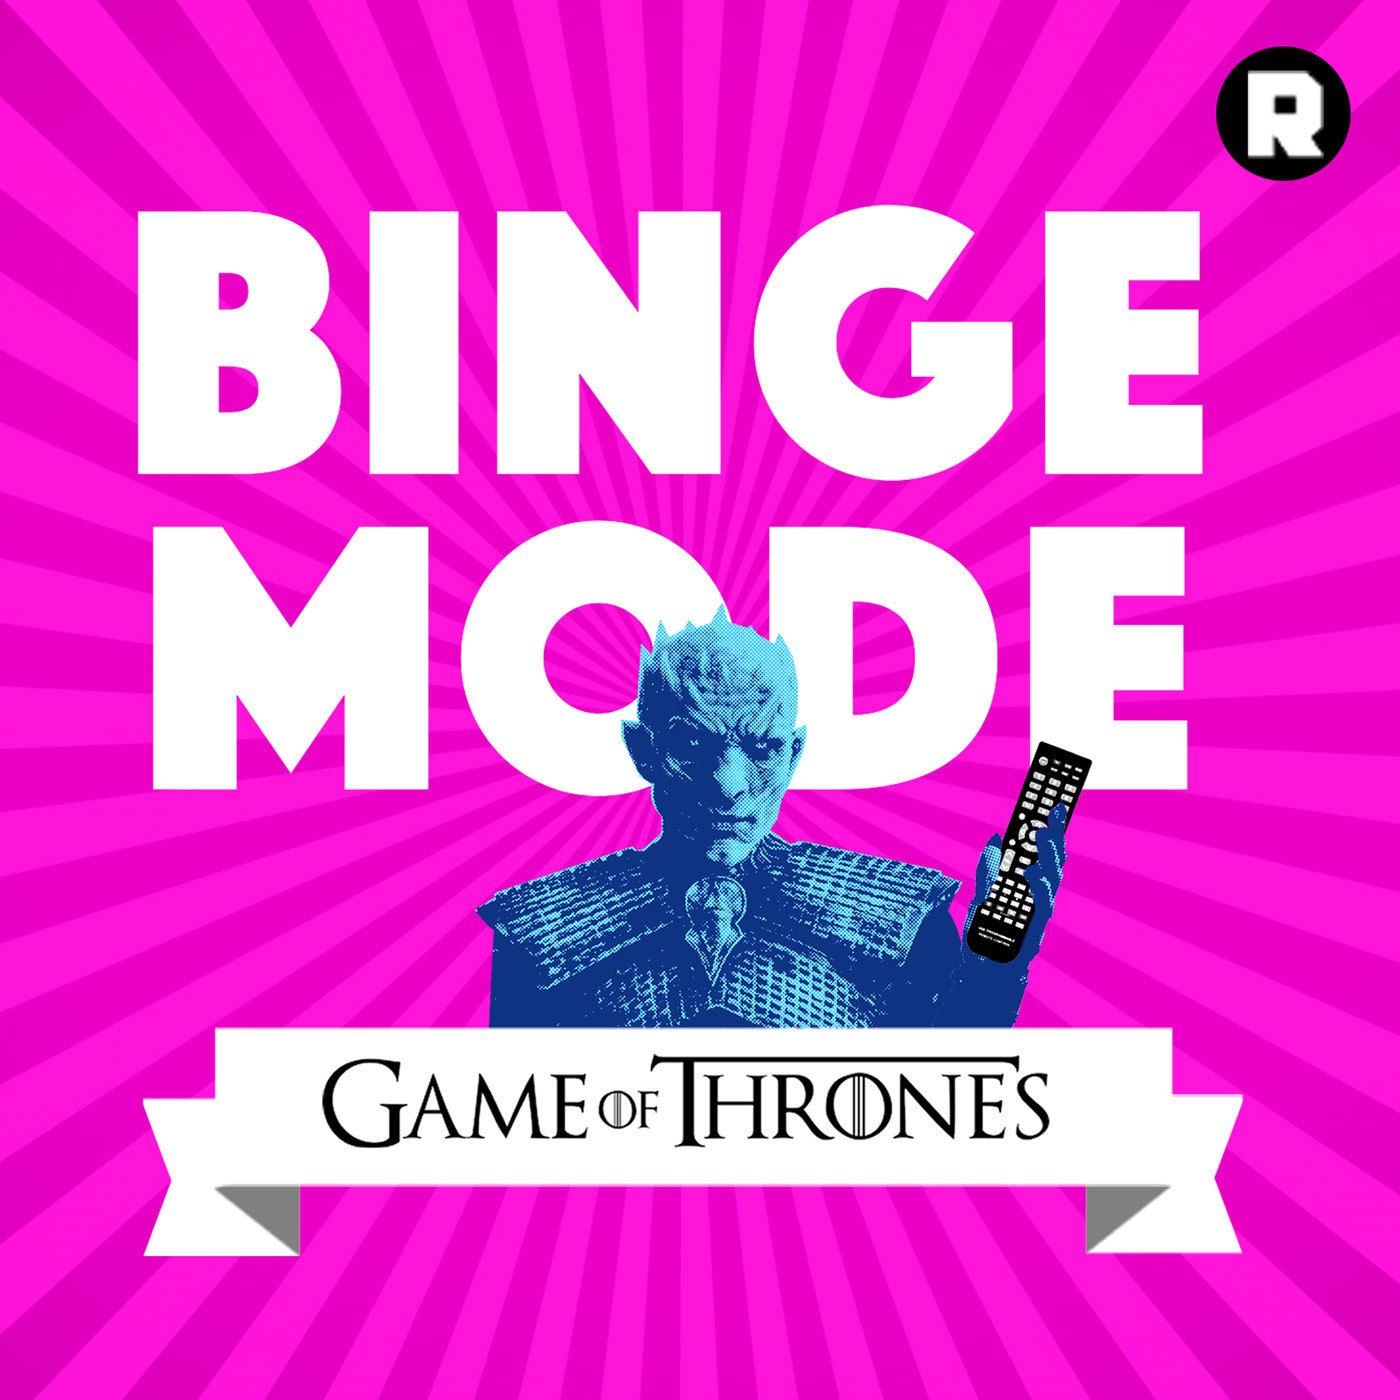 Binge Mode: Game of Thrones Trailer